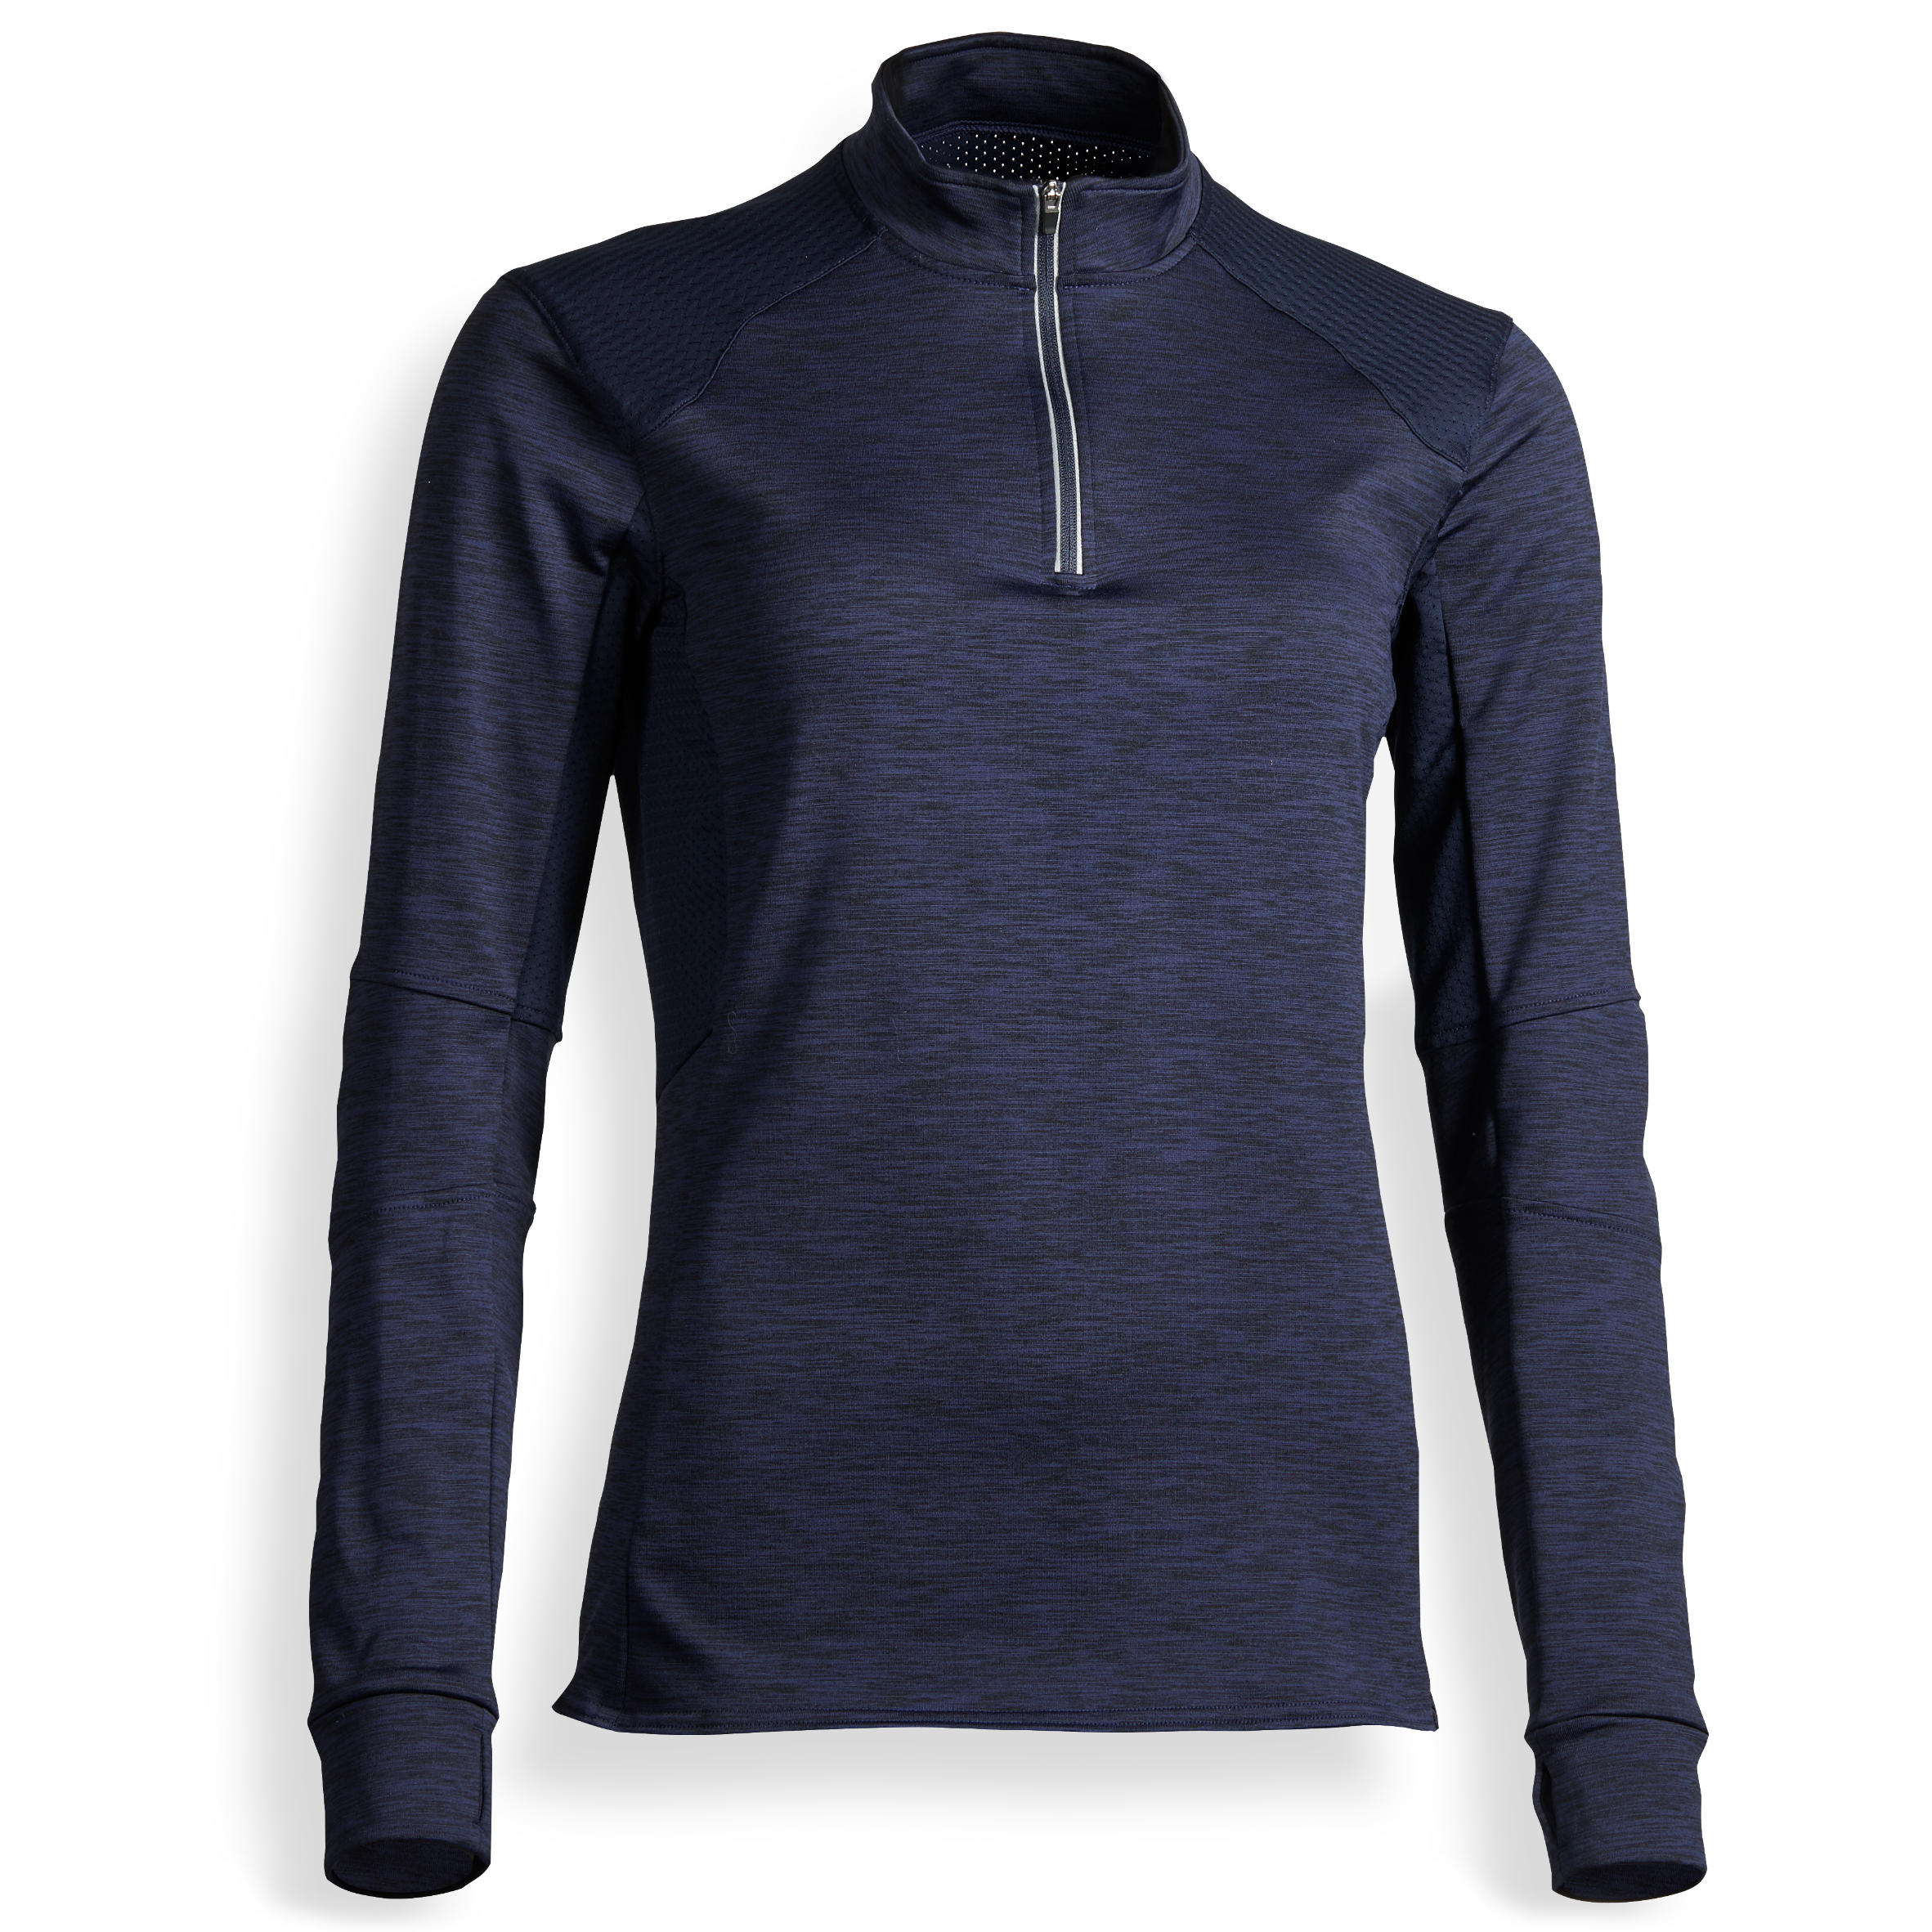 Womens Ladies Cardigan Long Sleeve Open Outdoor Running Riding Sun Protection Clothing Top